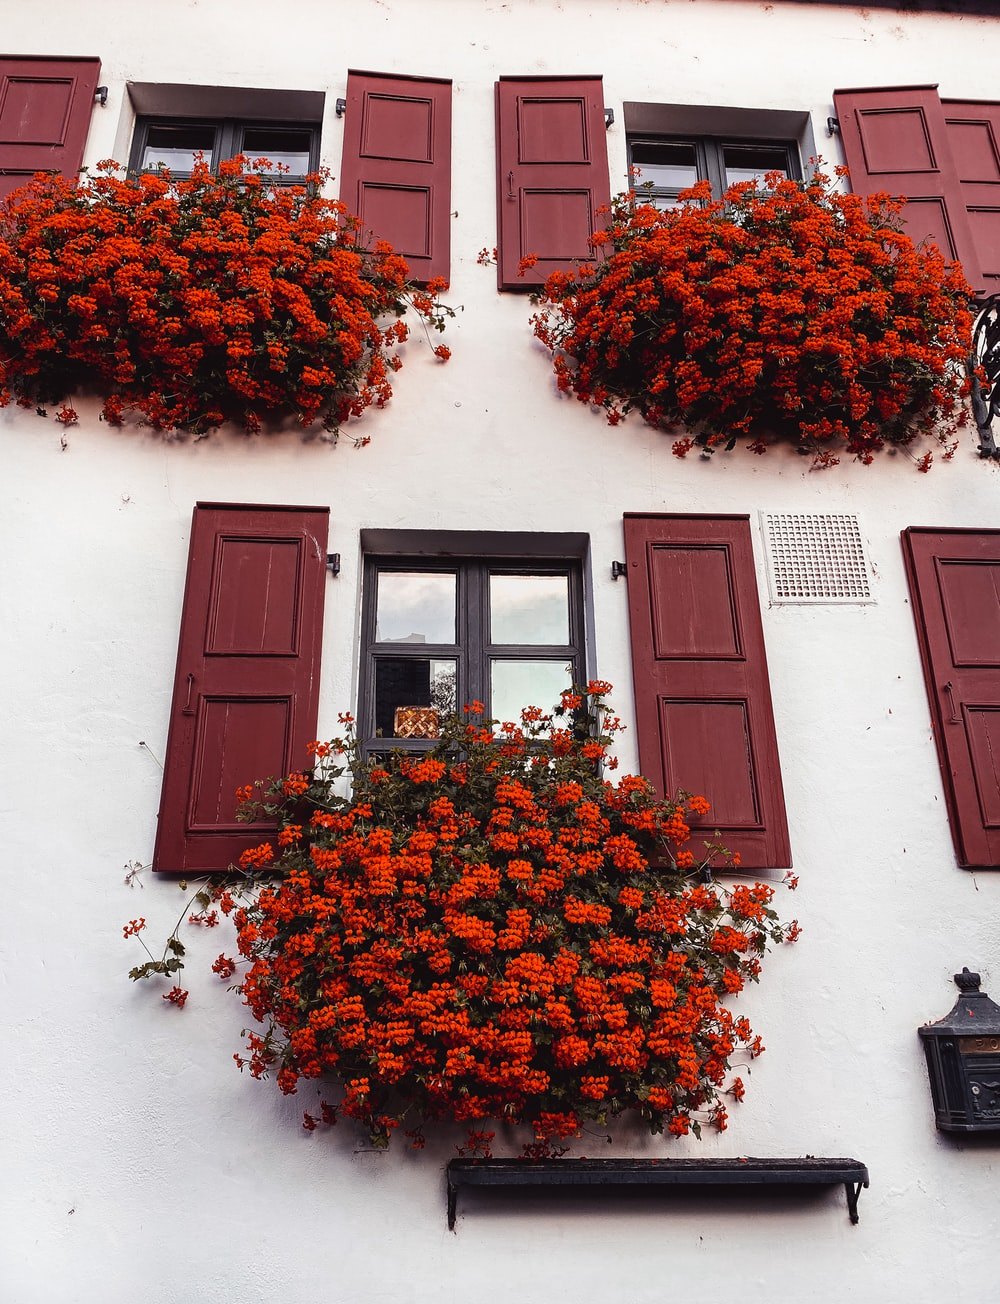 red and orange flowers on brown wooden window